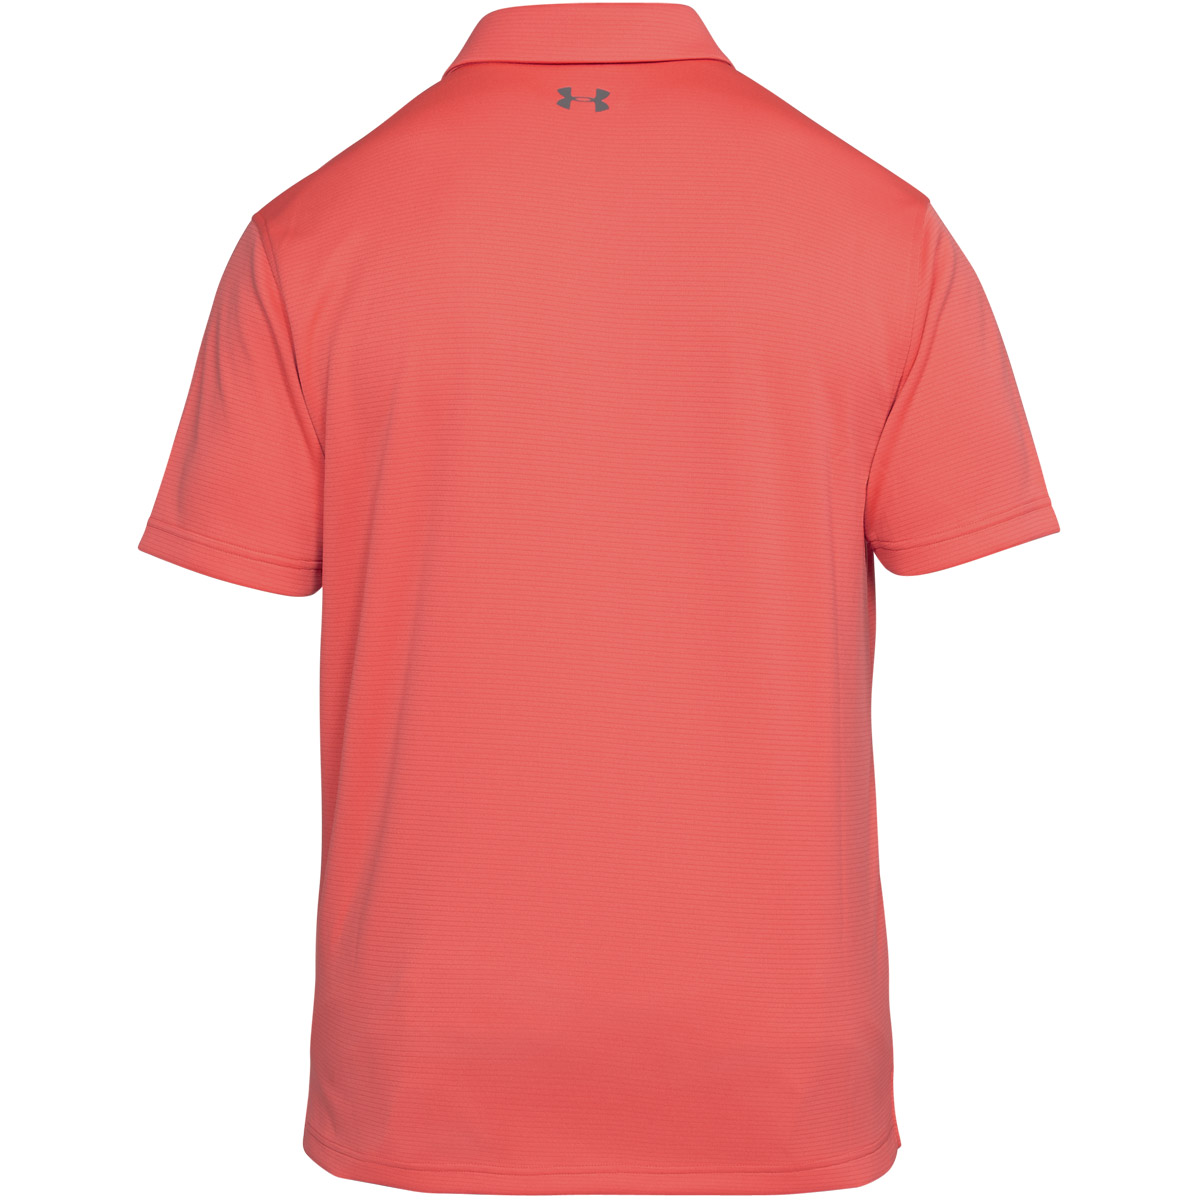 Under-Armour-Mens-Golf-Tech-Wicking-Textured-Soft-Light-Polo-Shirt thumbnail 91